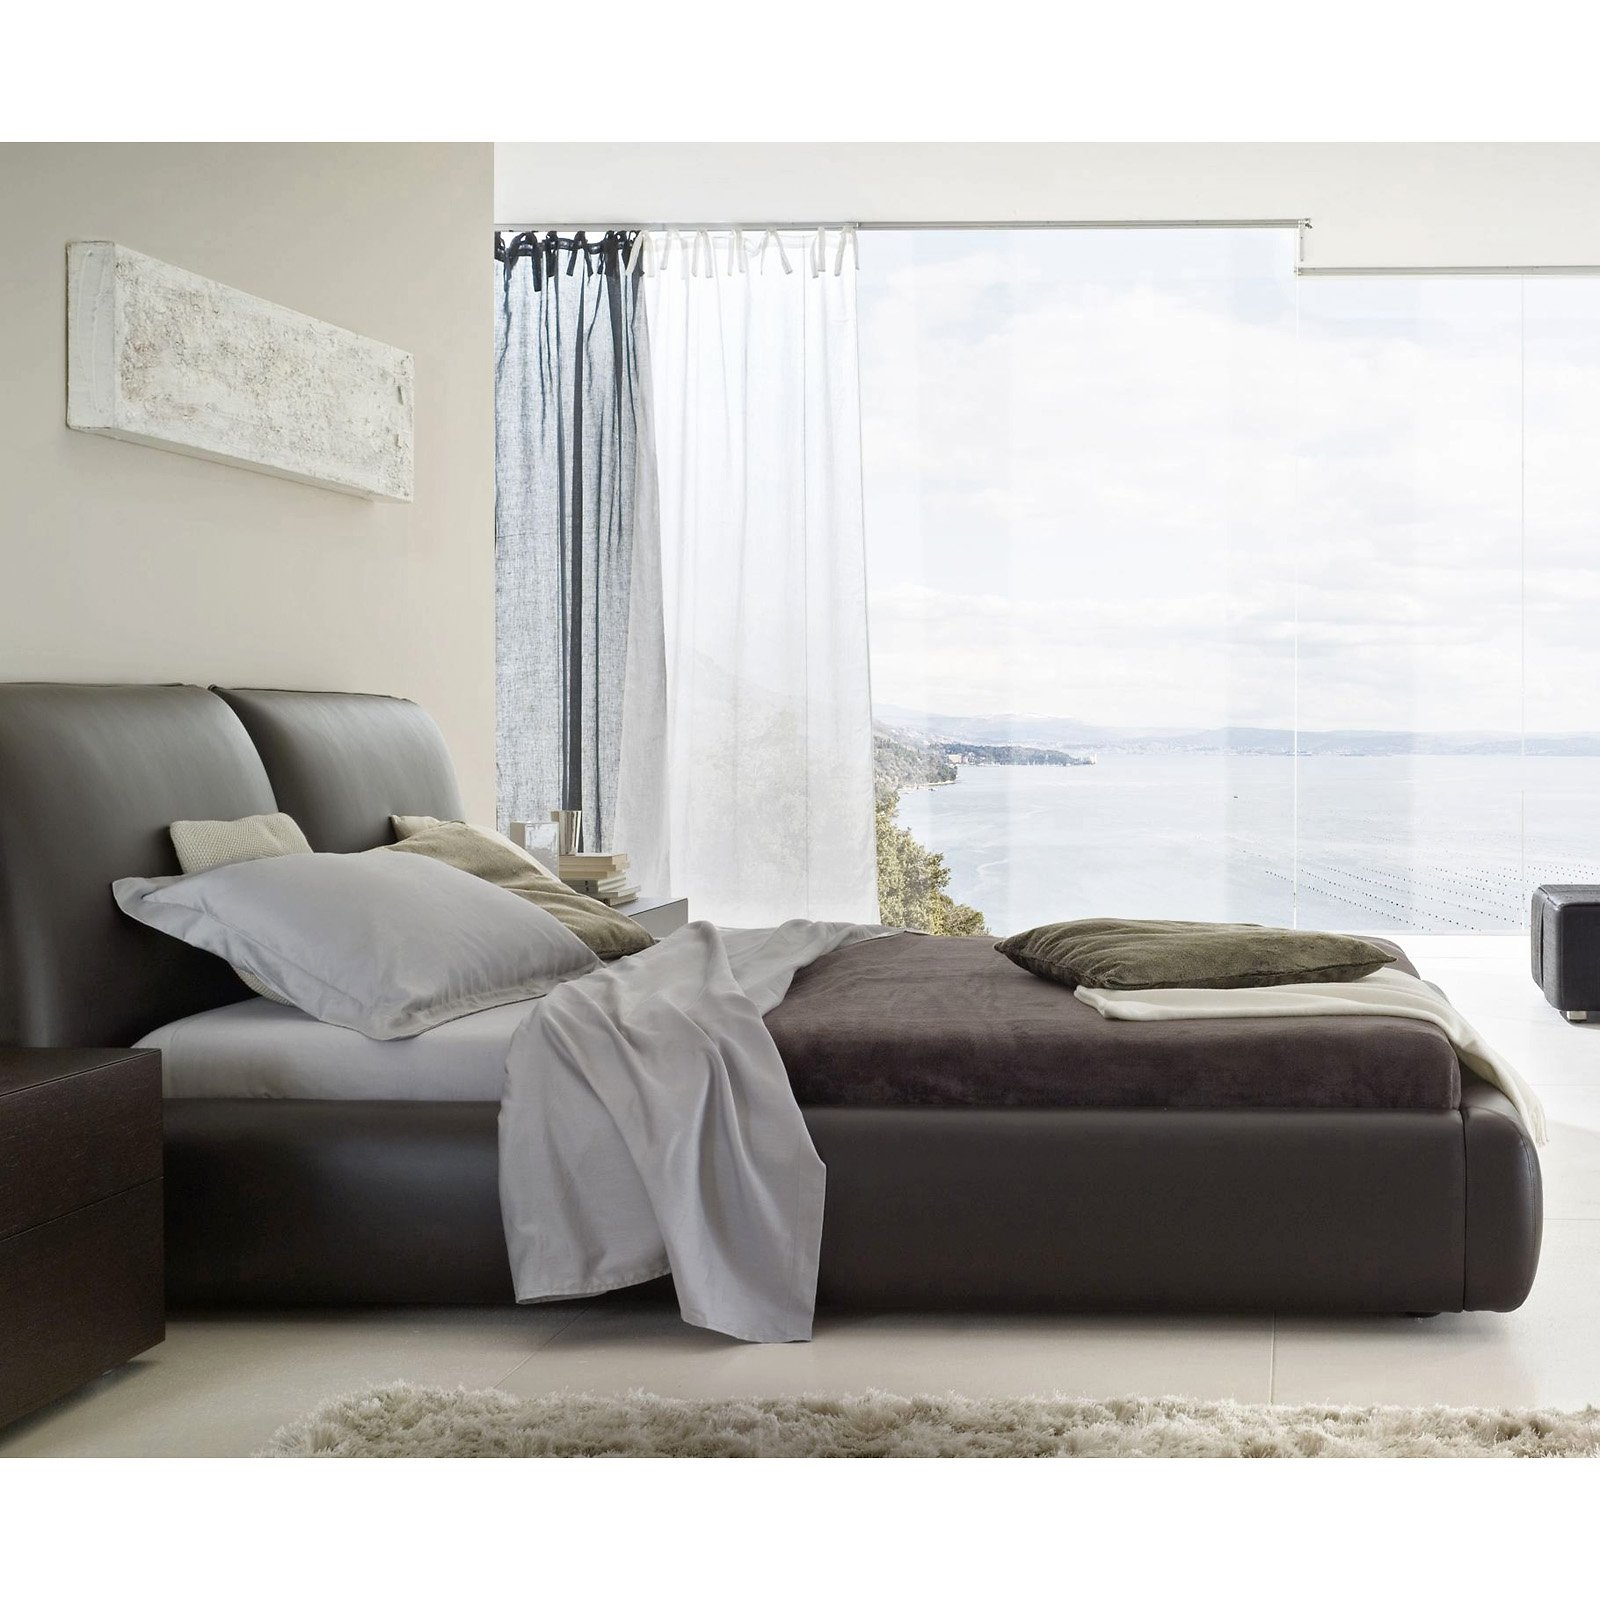 Pavo Platform Bed - Brown - Queen - Walmart.com